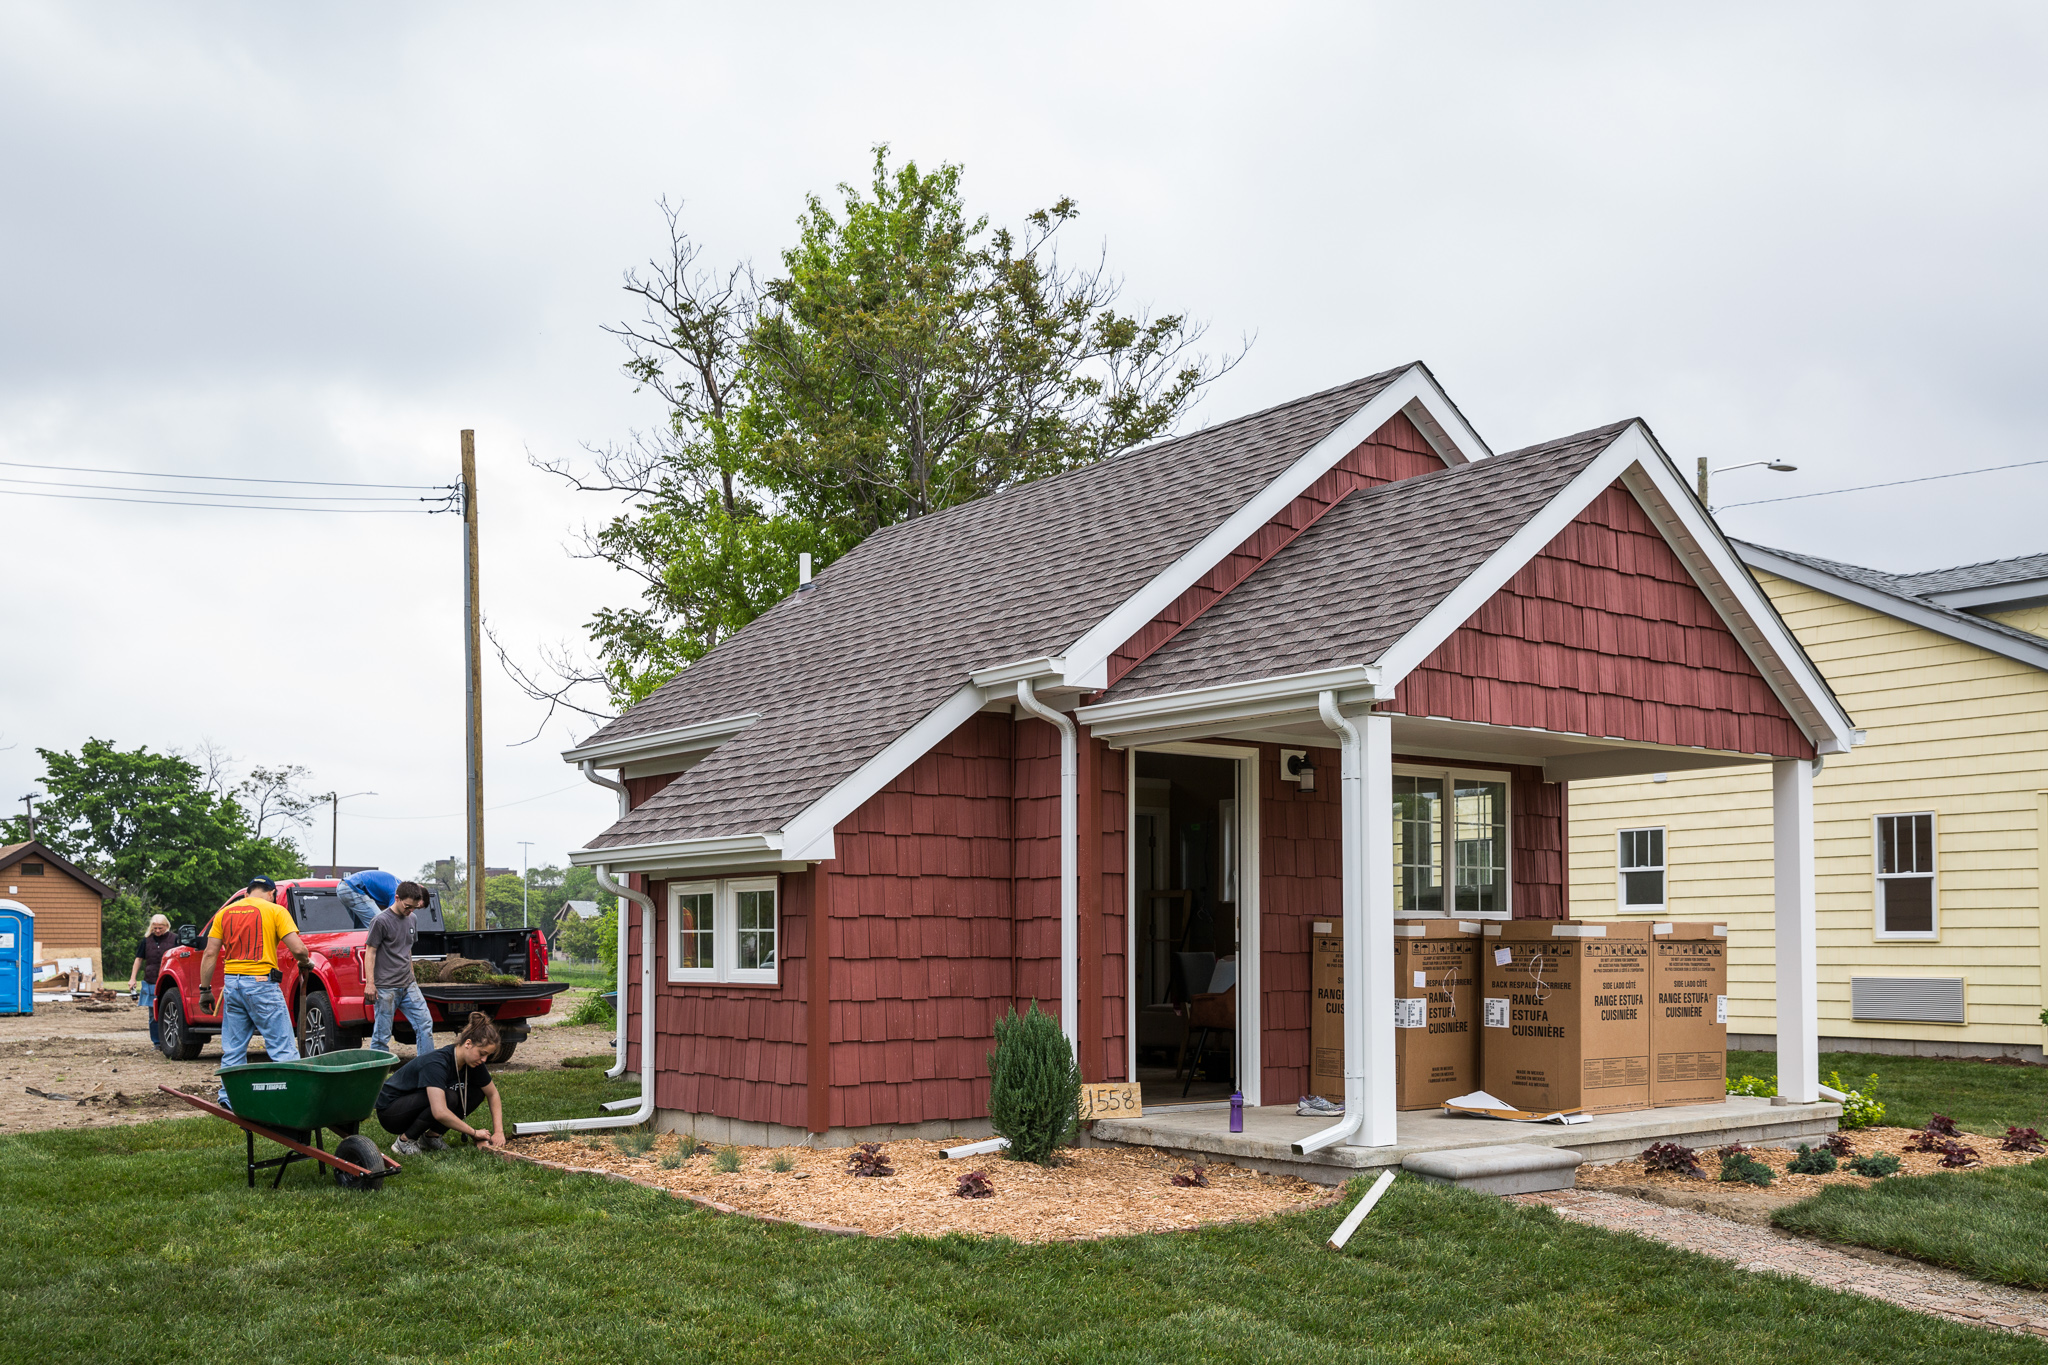 Pictures Homes a tiny home community rises in detroit - curbed detroit